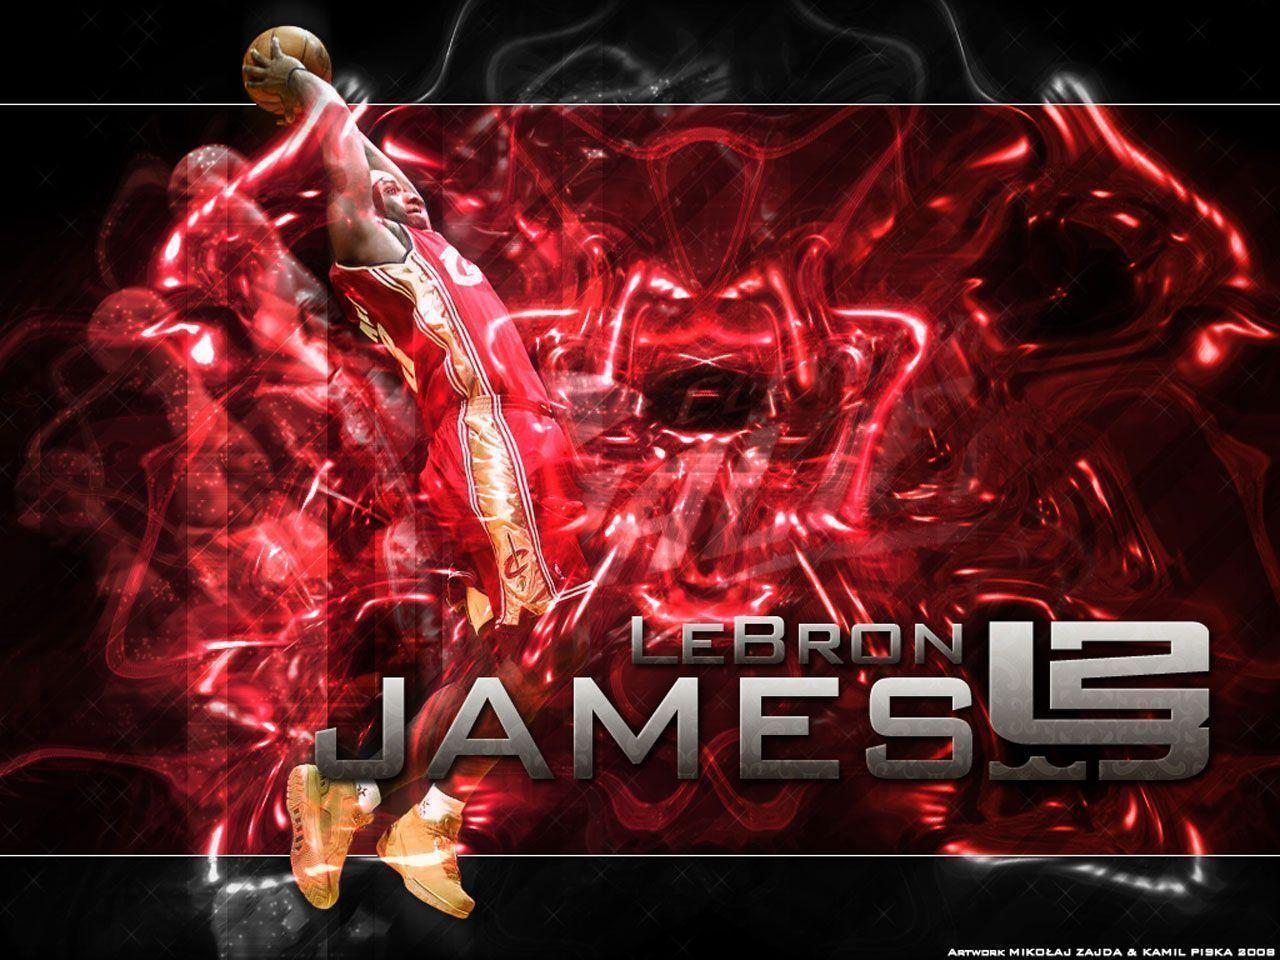 Wallpapers For > Lebron James Wallpapers Dunk Cavs